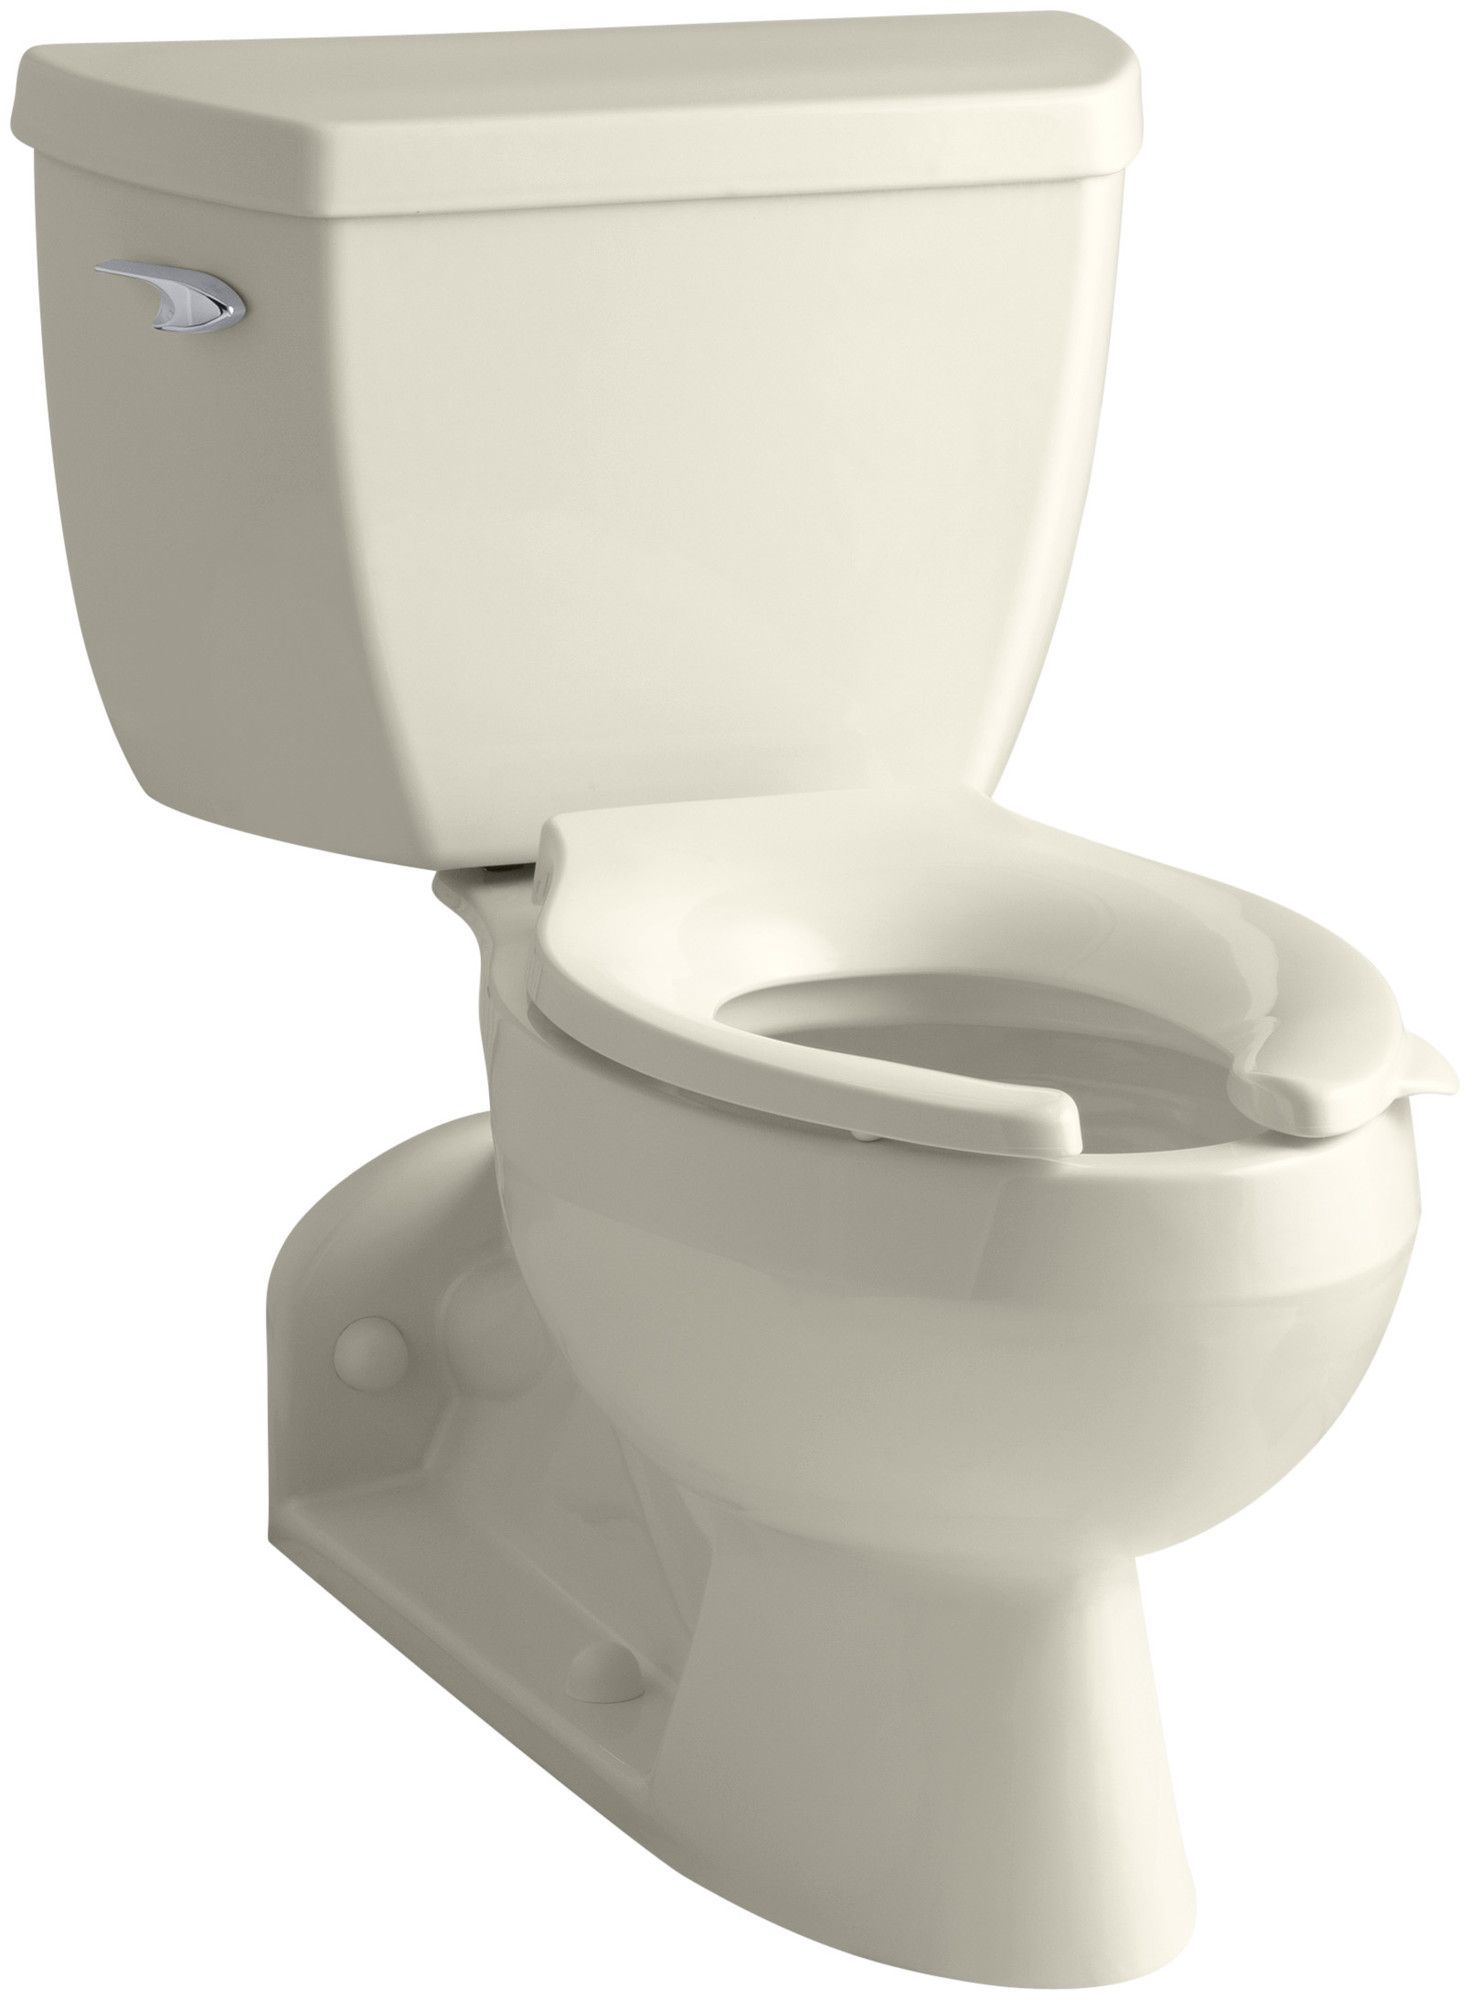 Barrington 1 6 Gpf Elongated Two Piece Toilet Toilet New Toilet Commercial Toilet